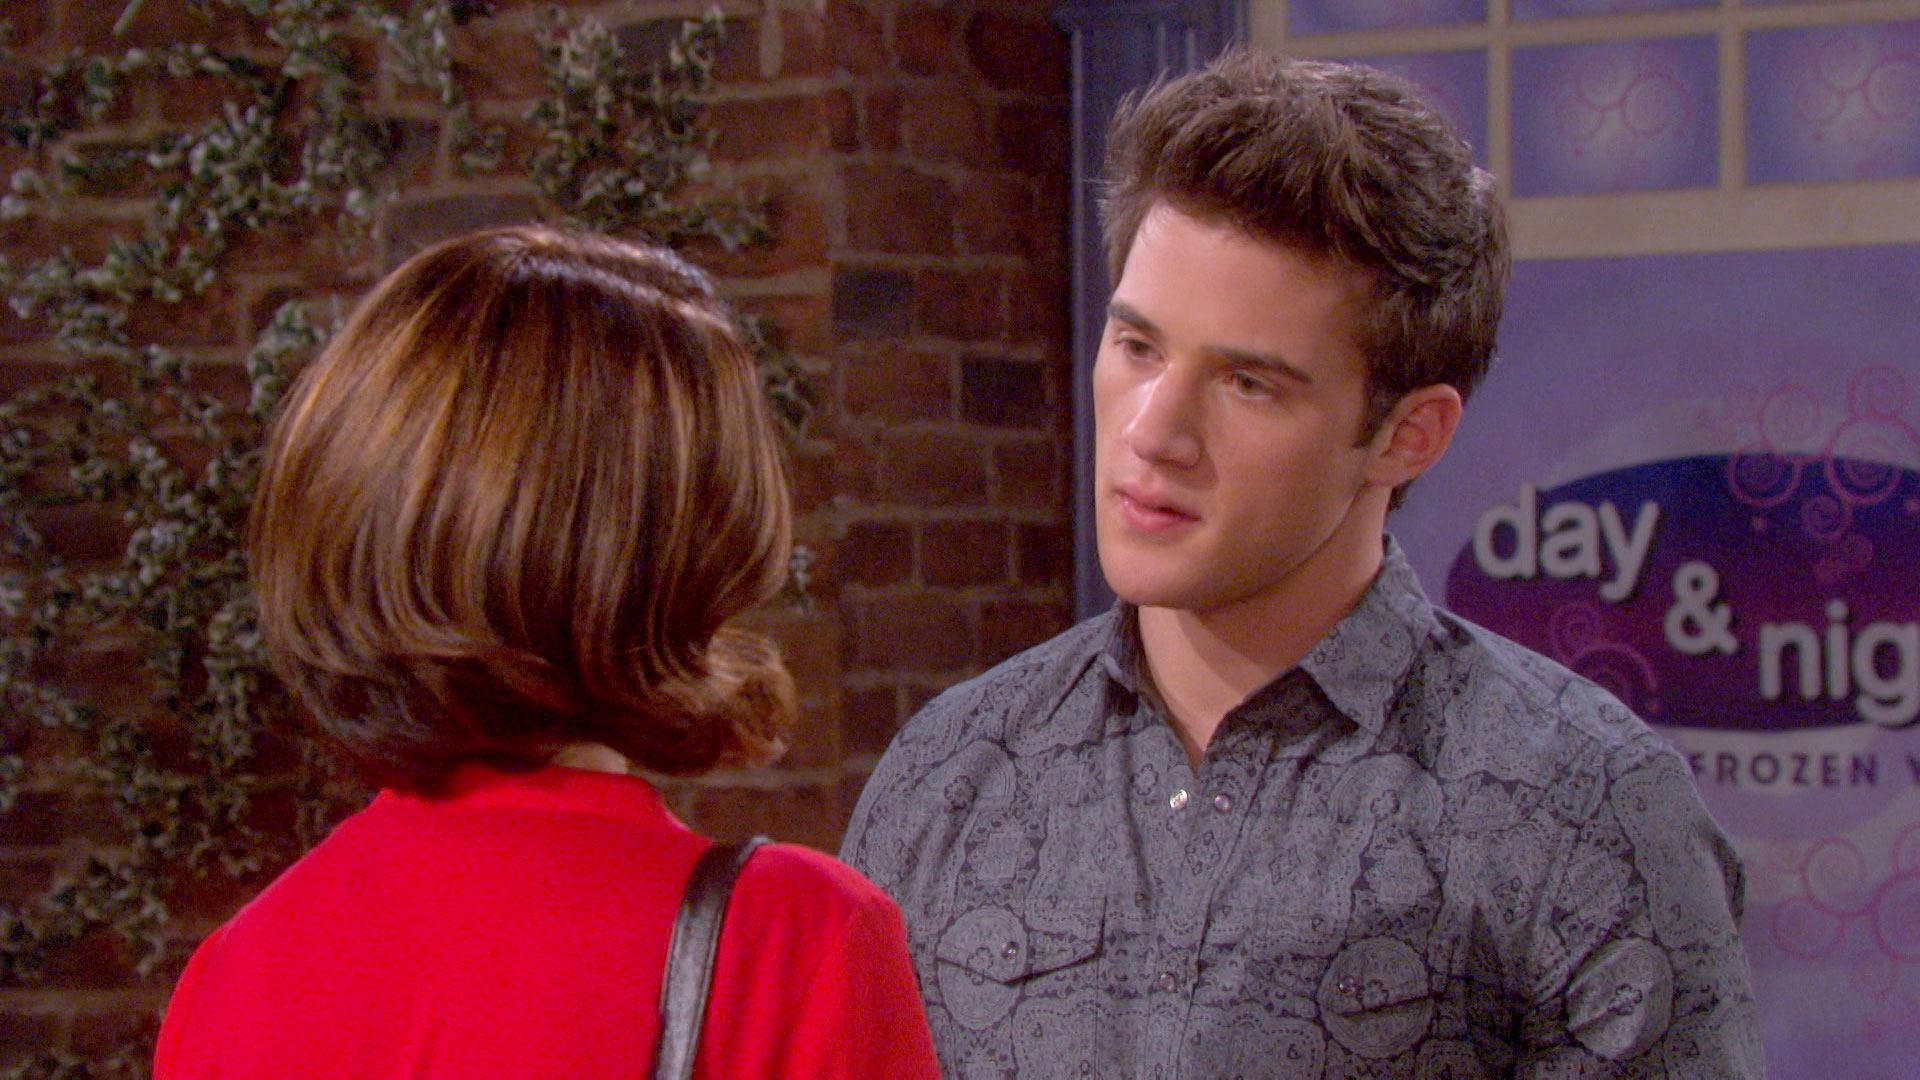 Theresa threatens to screw up JJ's relationship with Paige.